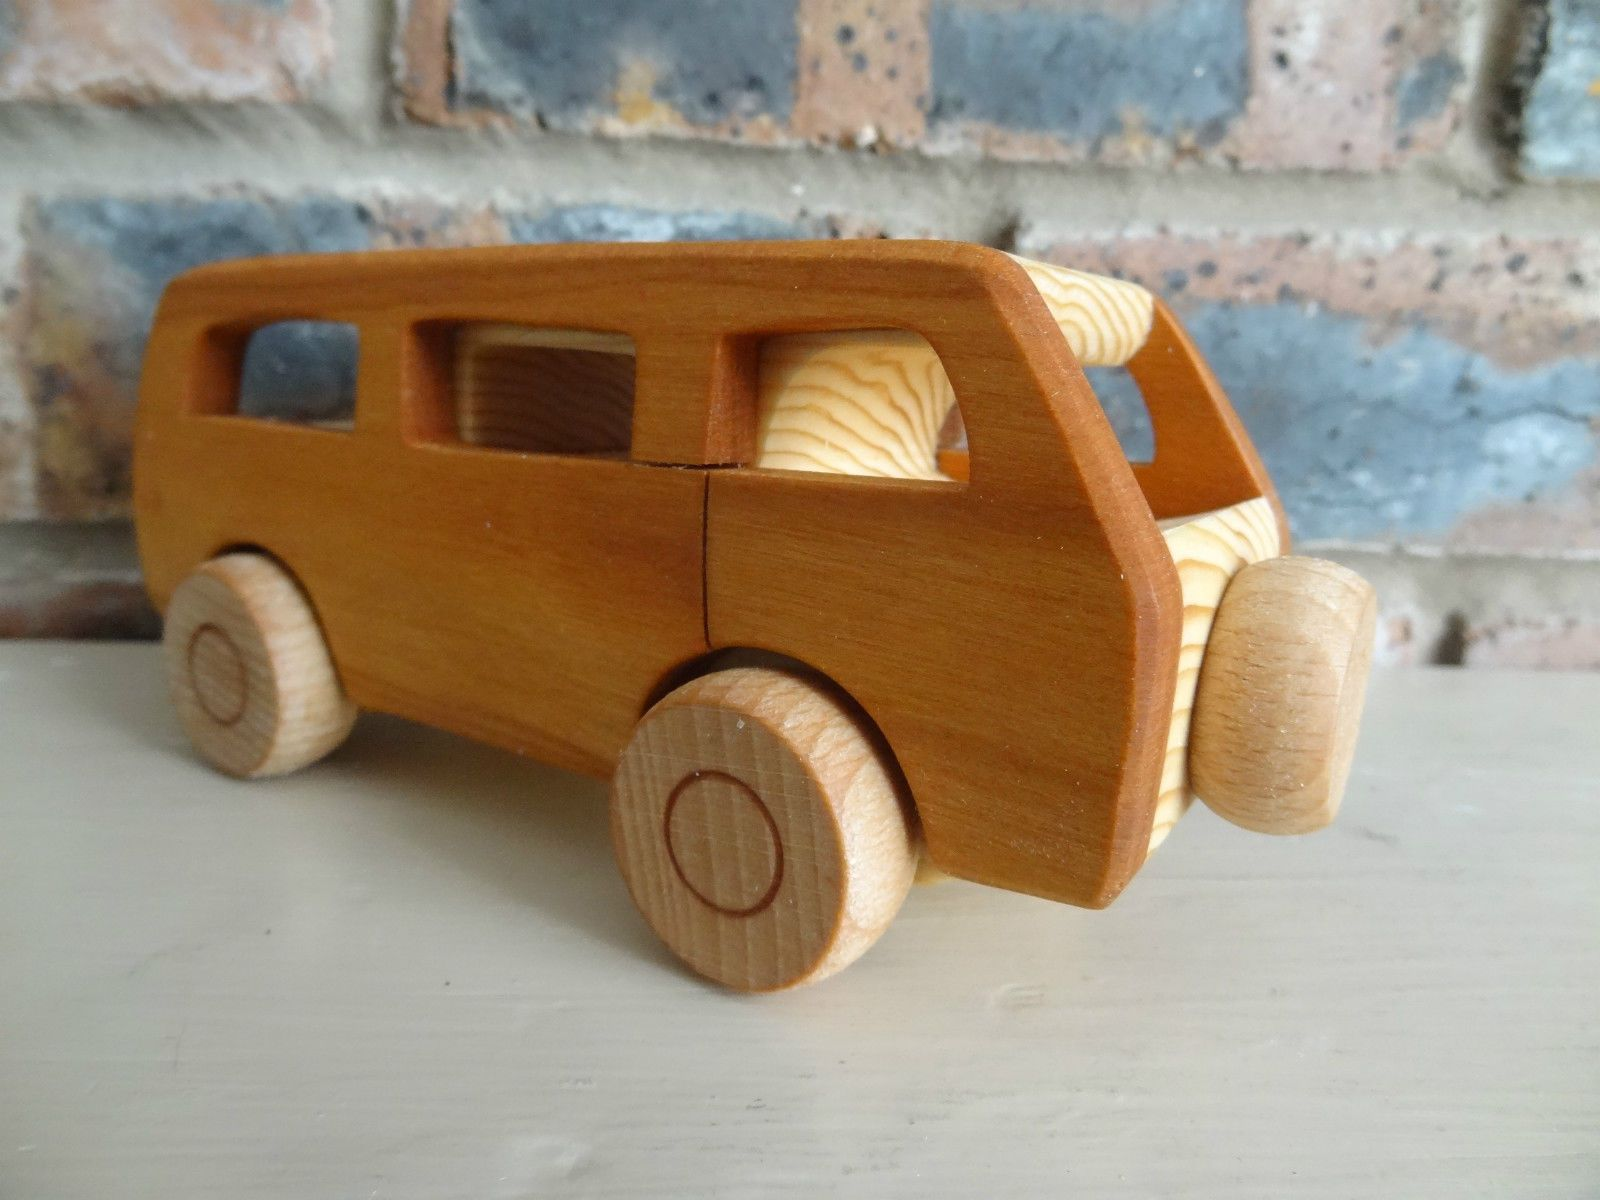 http://www.ebay.co.uk/itm/Wooden-toy-VW-CAMPER-T2-vintage-style-handmade-High-quality/131340862868?_trksid=p2047675.c100011.m1850